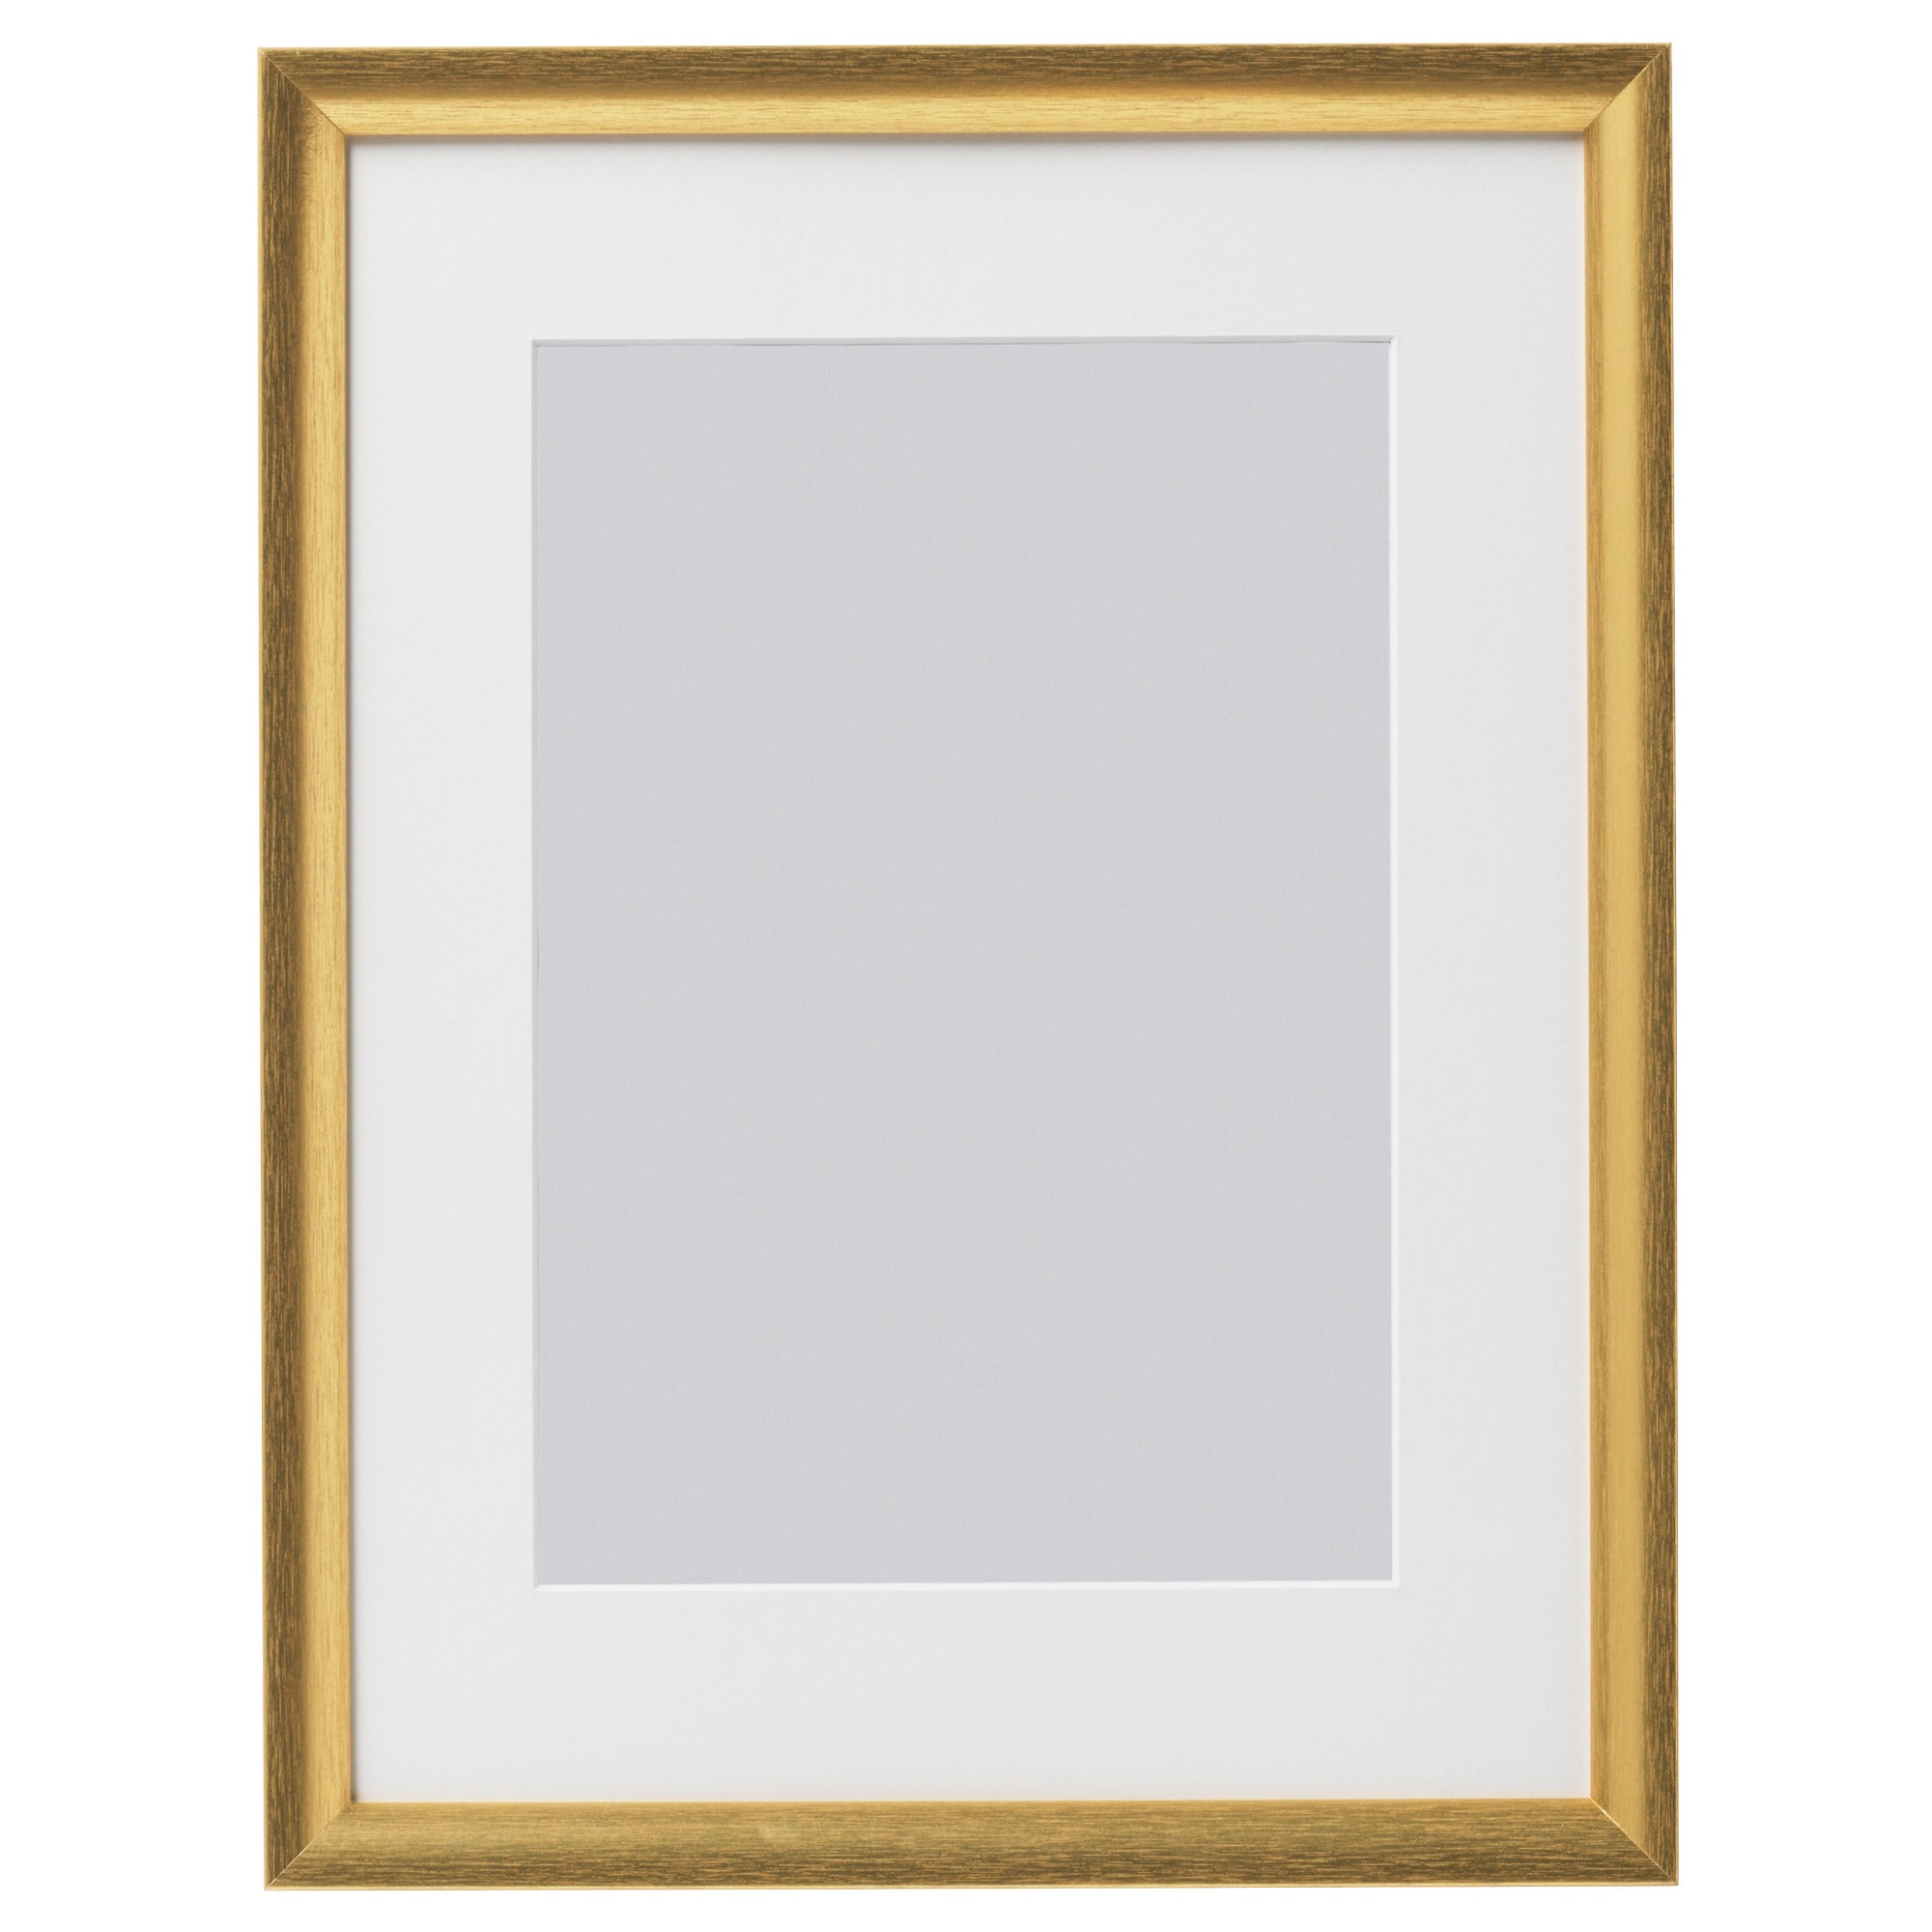 Silverhjden frame 12x16 ikea inter ikea systems bv 1999 2018 privacy policy jeuxipadfo Image collections